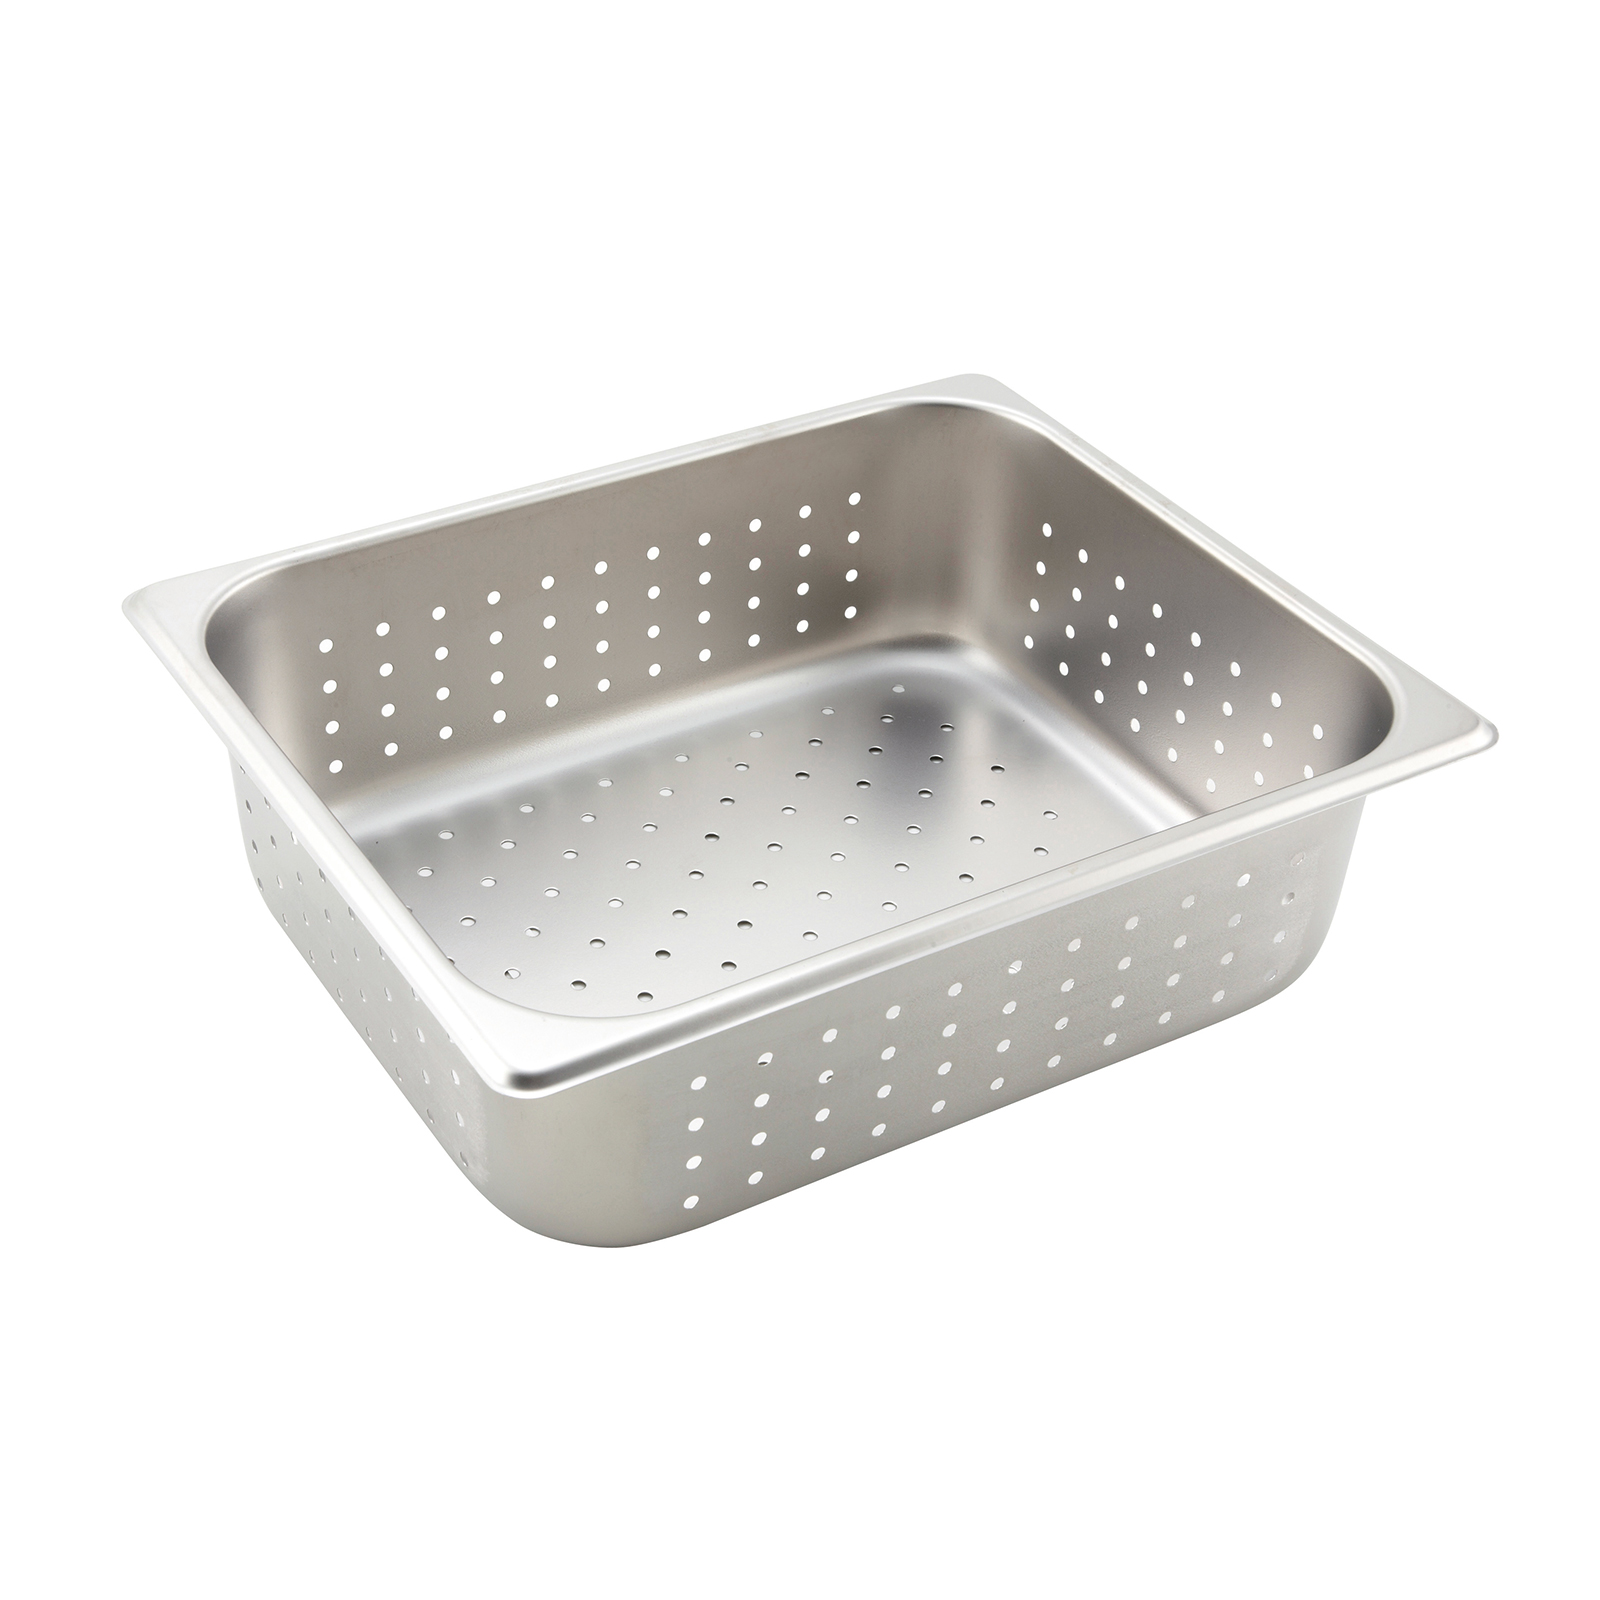 Winco SPHP4 steam table pan, stainless steel